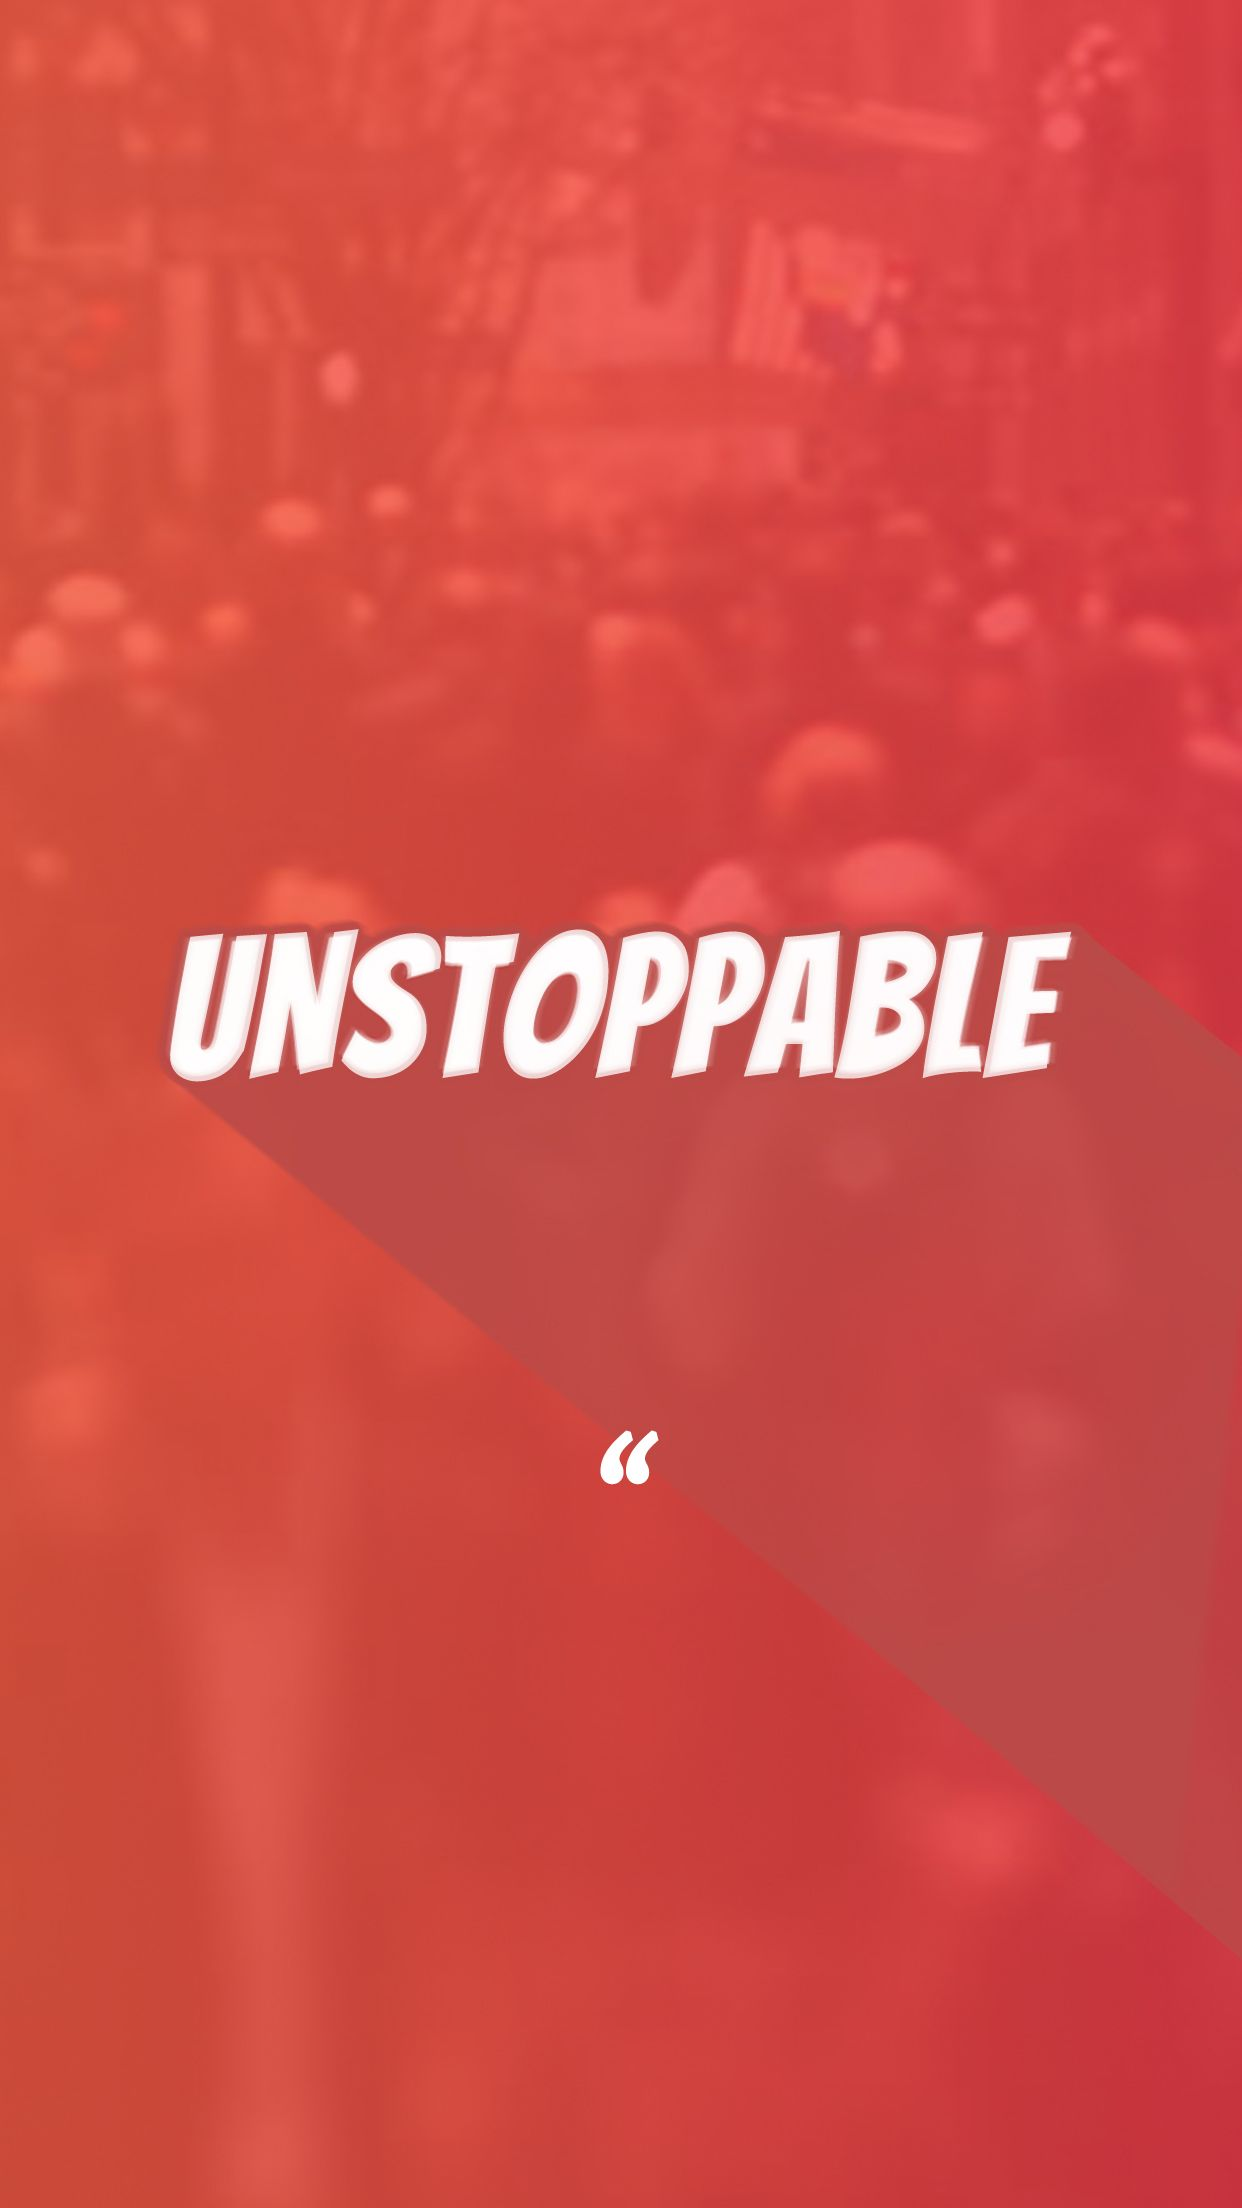 unstoppable wallpaper iphone typography minimal Typography 1242x2208